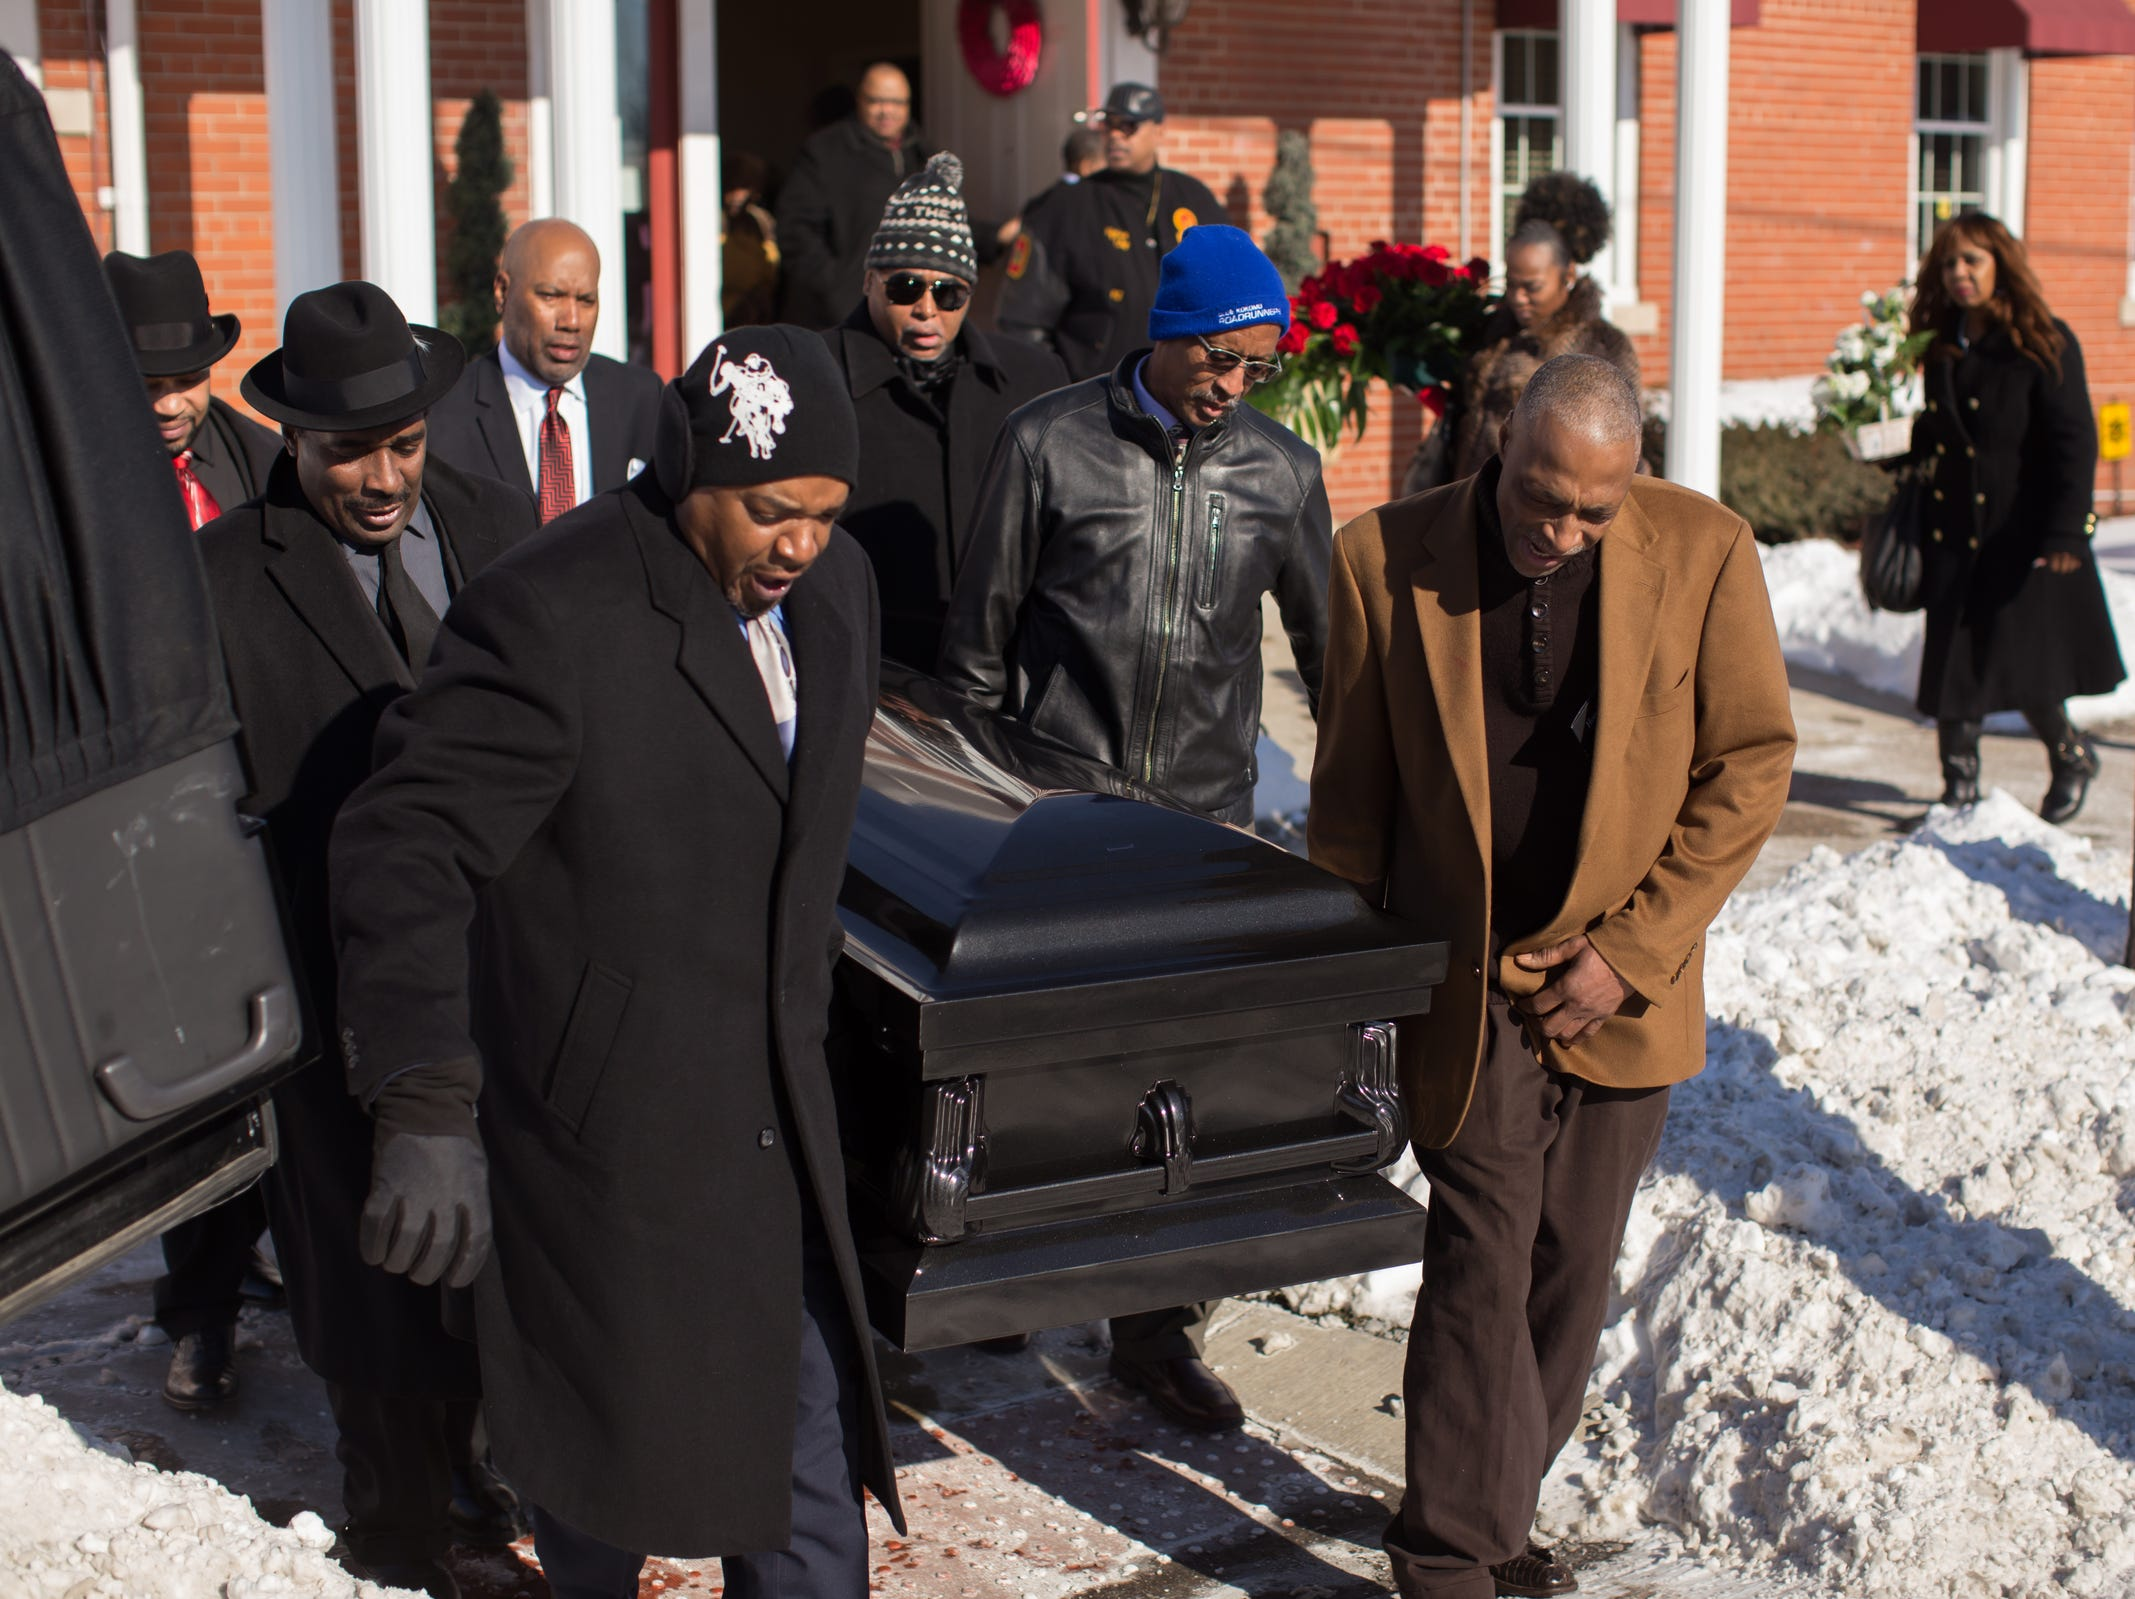 The casket of the late Rudy Barker is carried towards the hearse following his funeral service at Hutchison Funeral Home in Detroit on Monday, January 21, 2019. Barker was known for his impressions of late civil rights leader Martin Luther King Jr. and was buried on the national holiday honoring his hero.